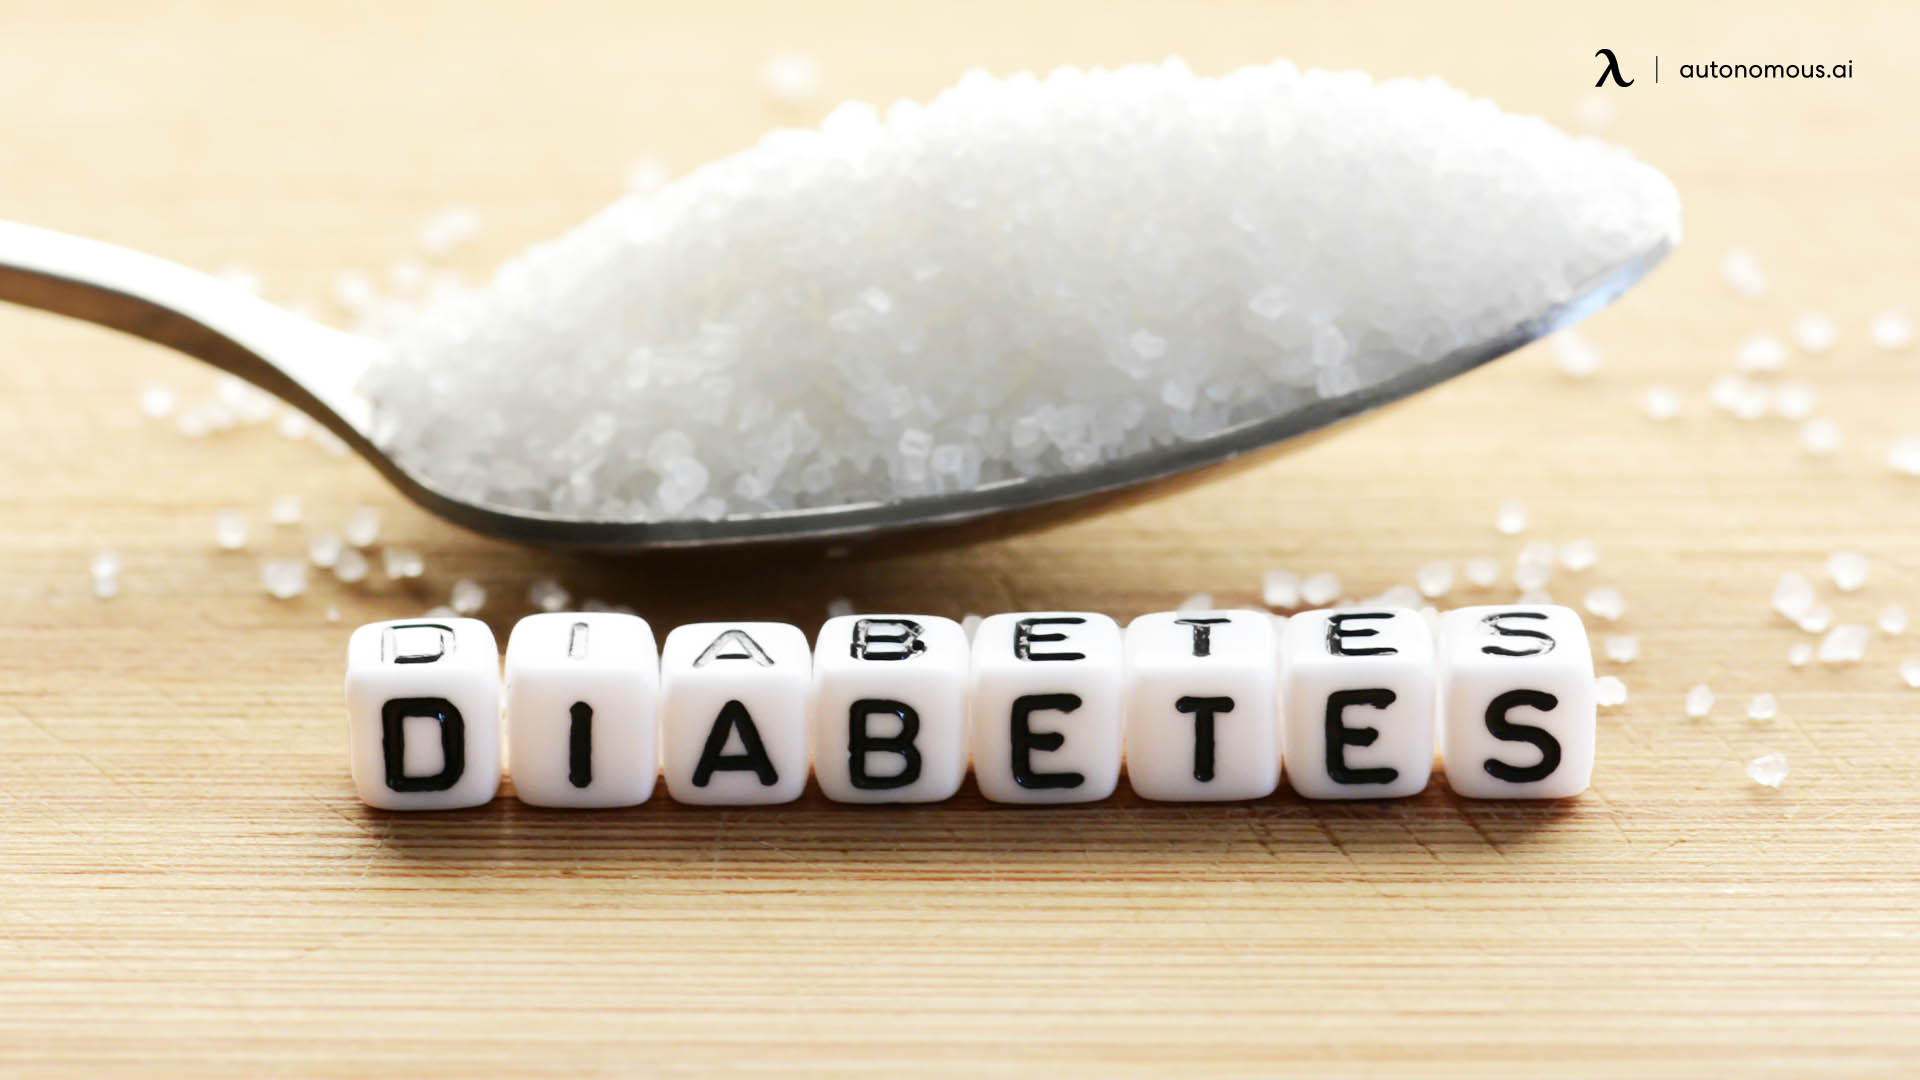 Reduces Blood Sugar Levels And Risk Of Diabetes